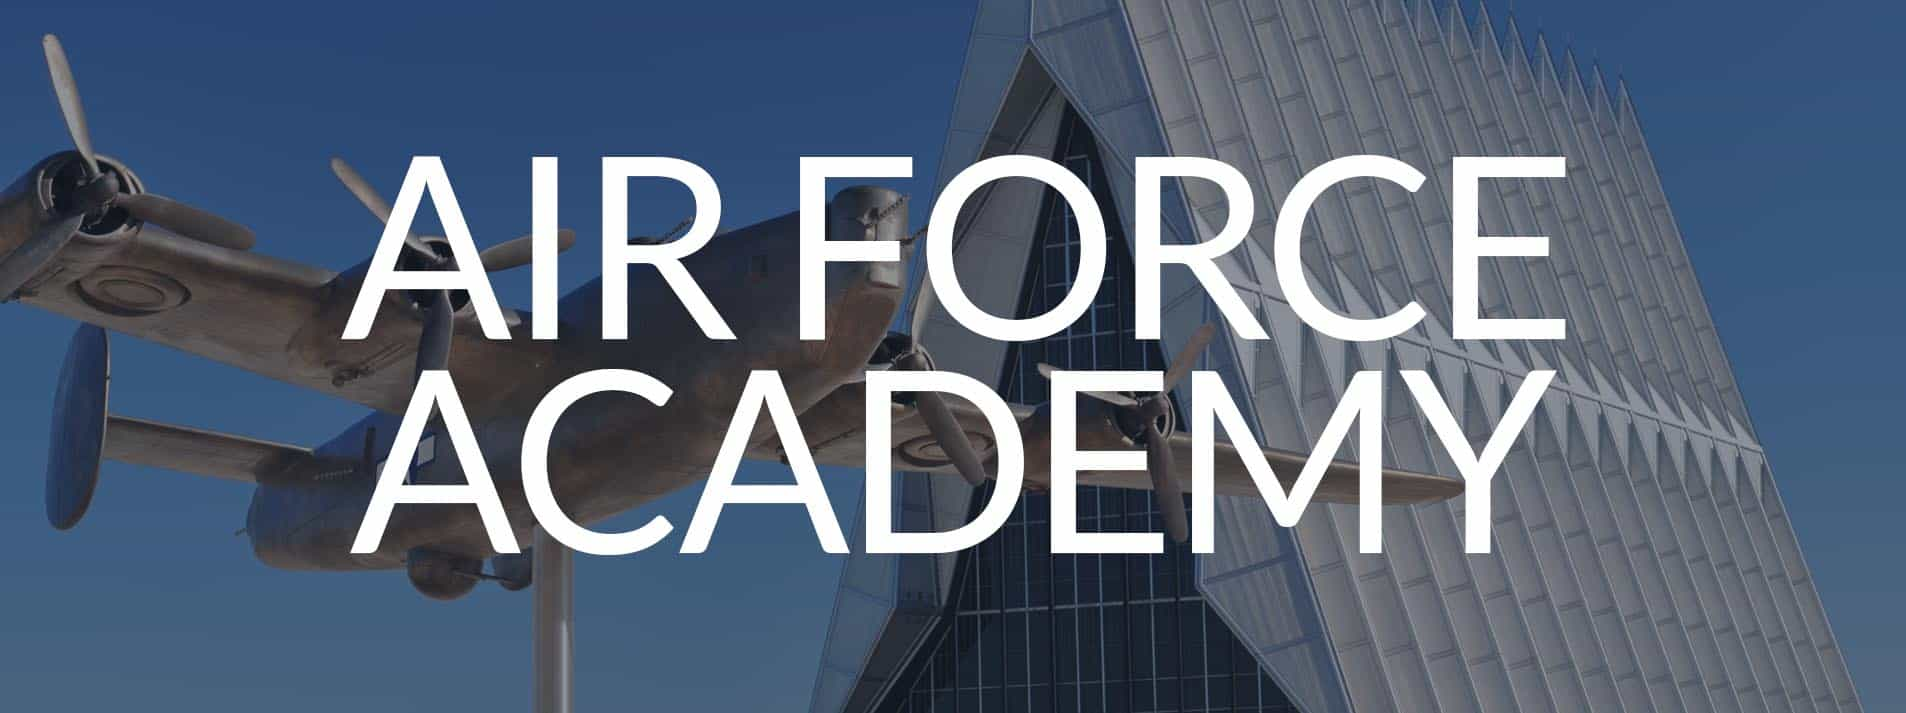 Air Force Academy page button